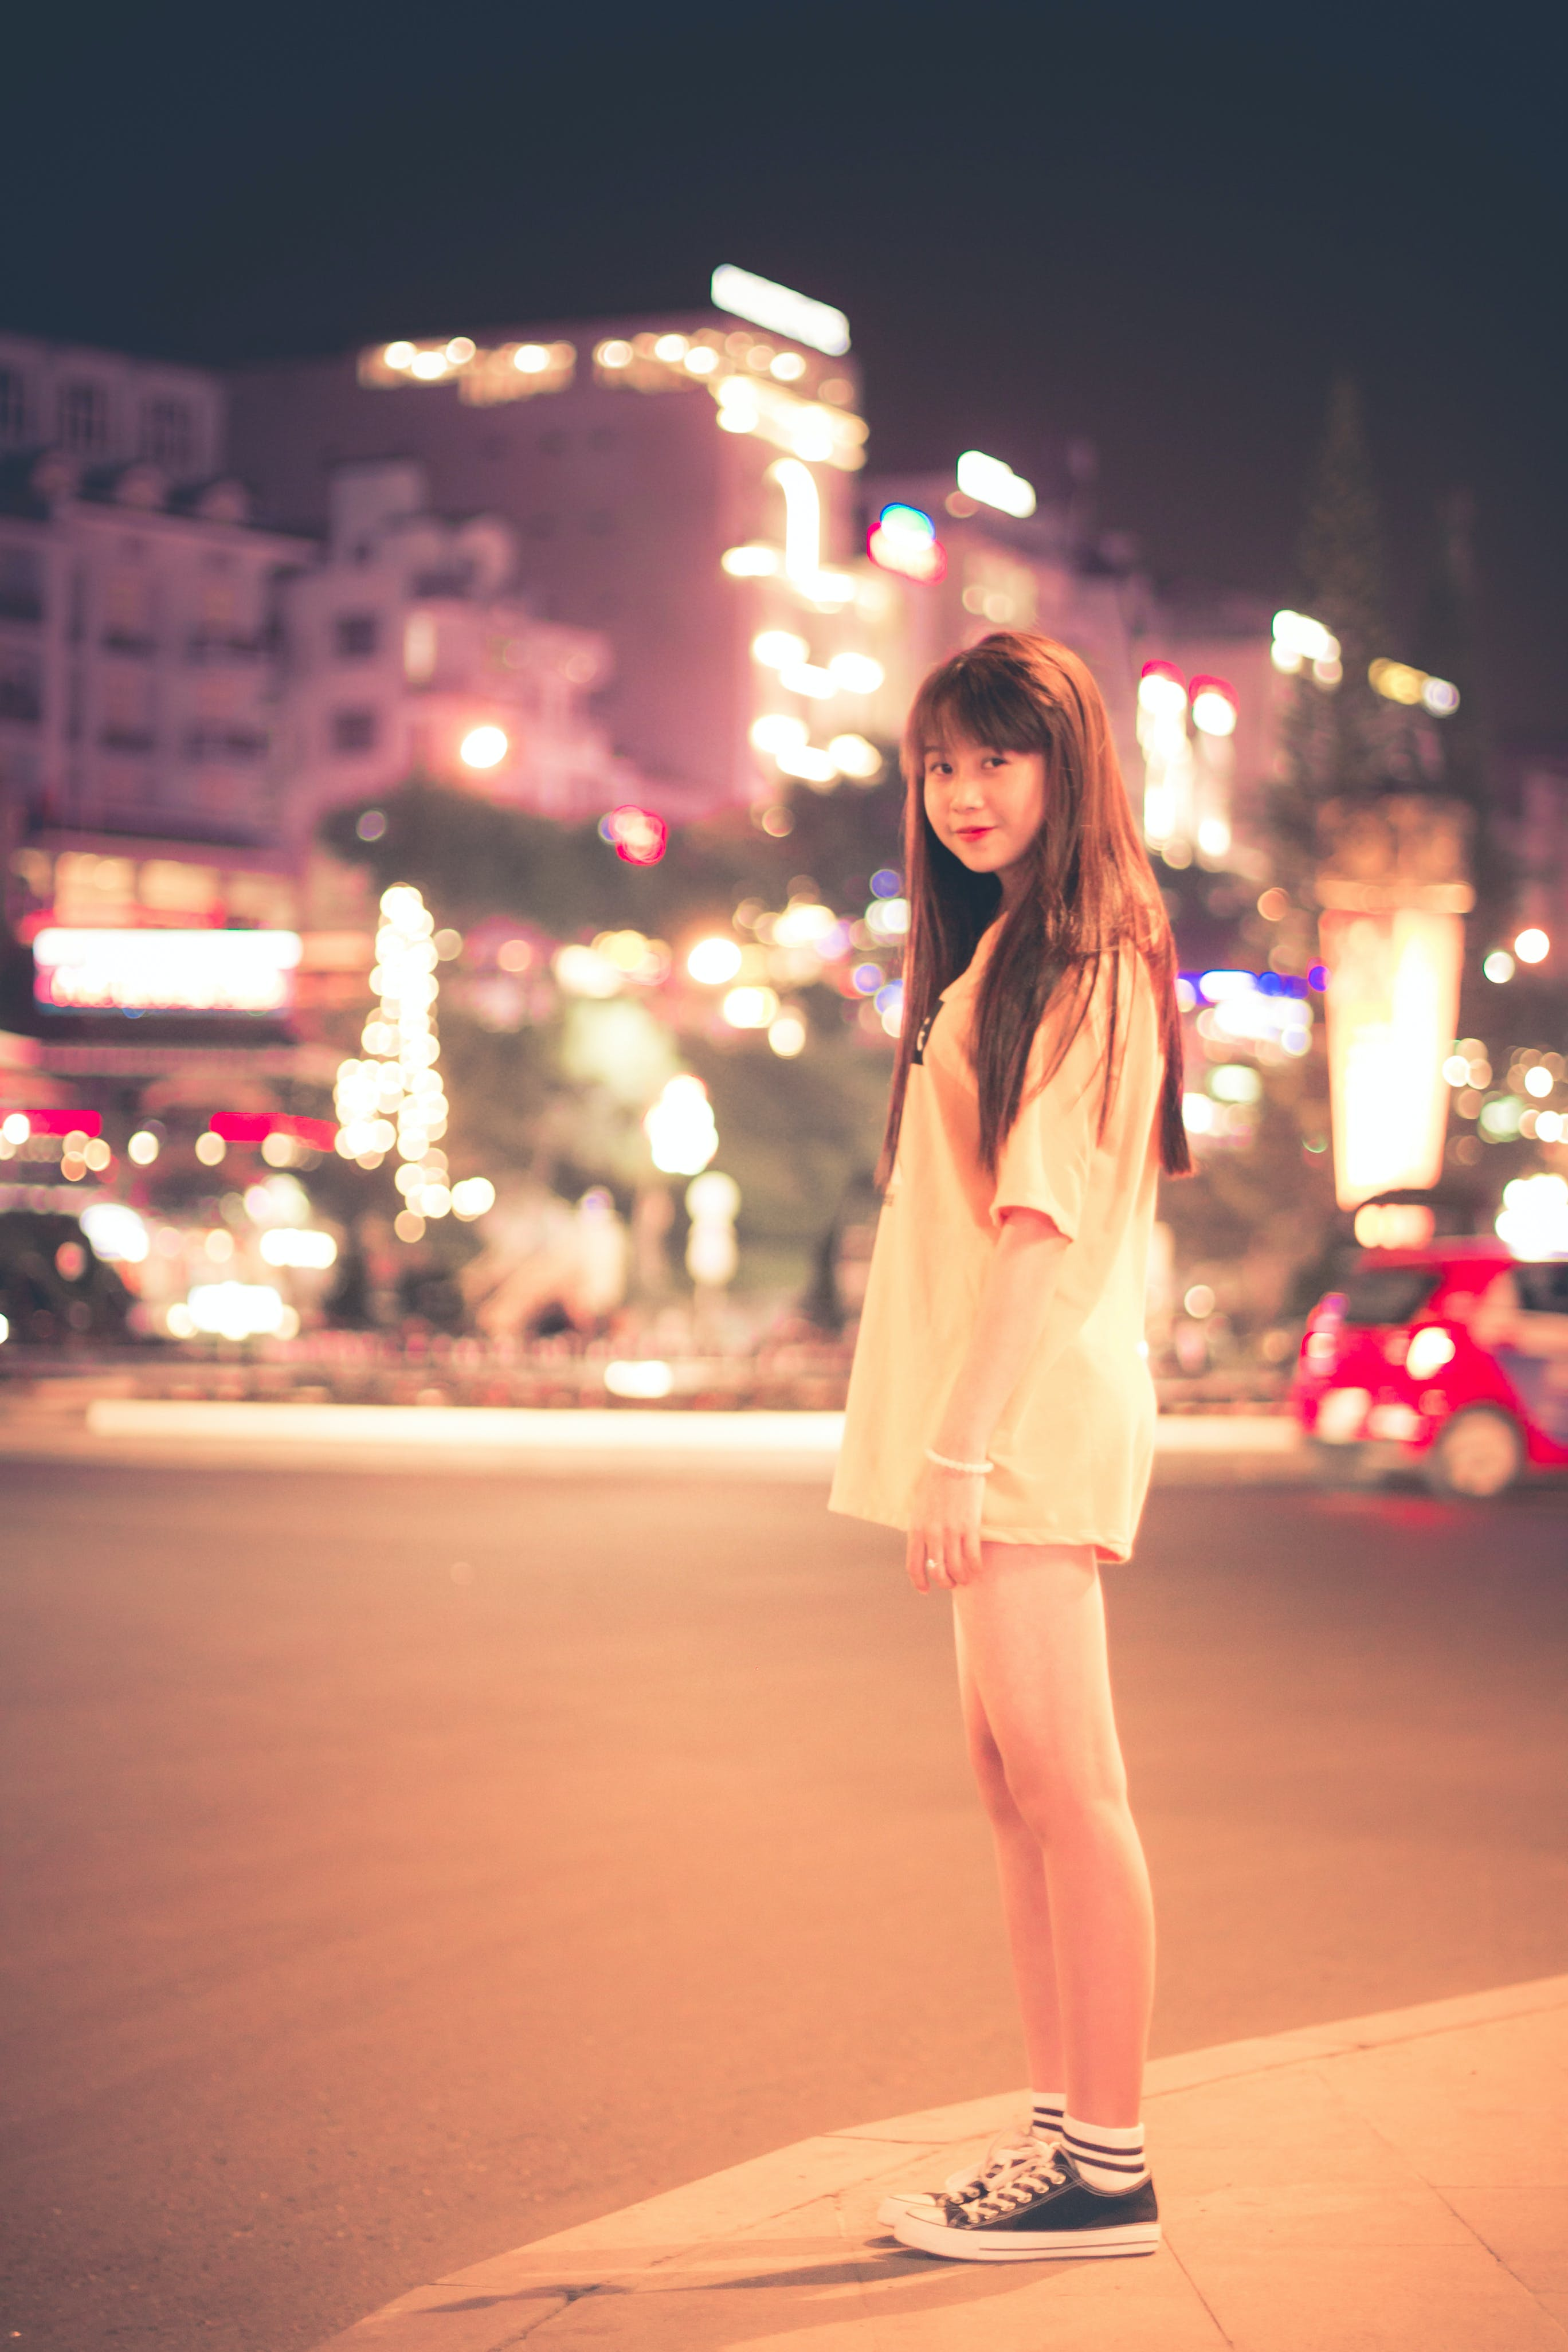 Woman in White Shirt Standing on Roadside during Night Time